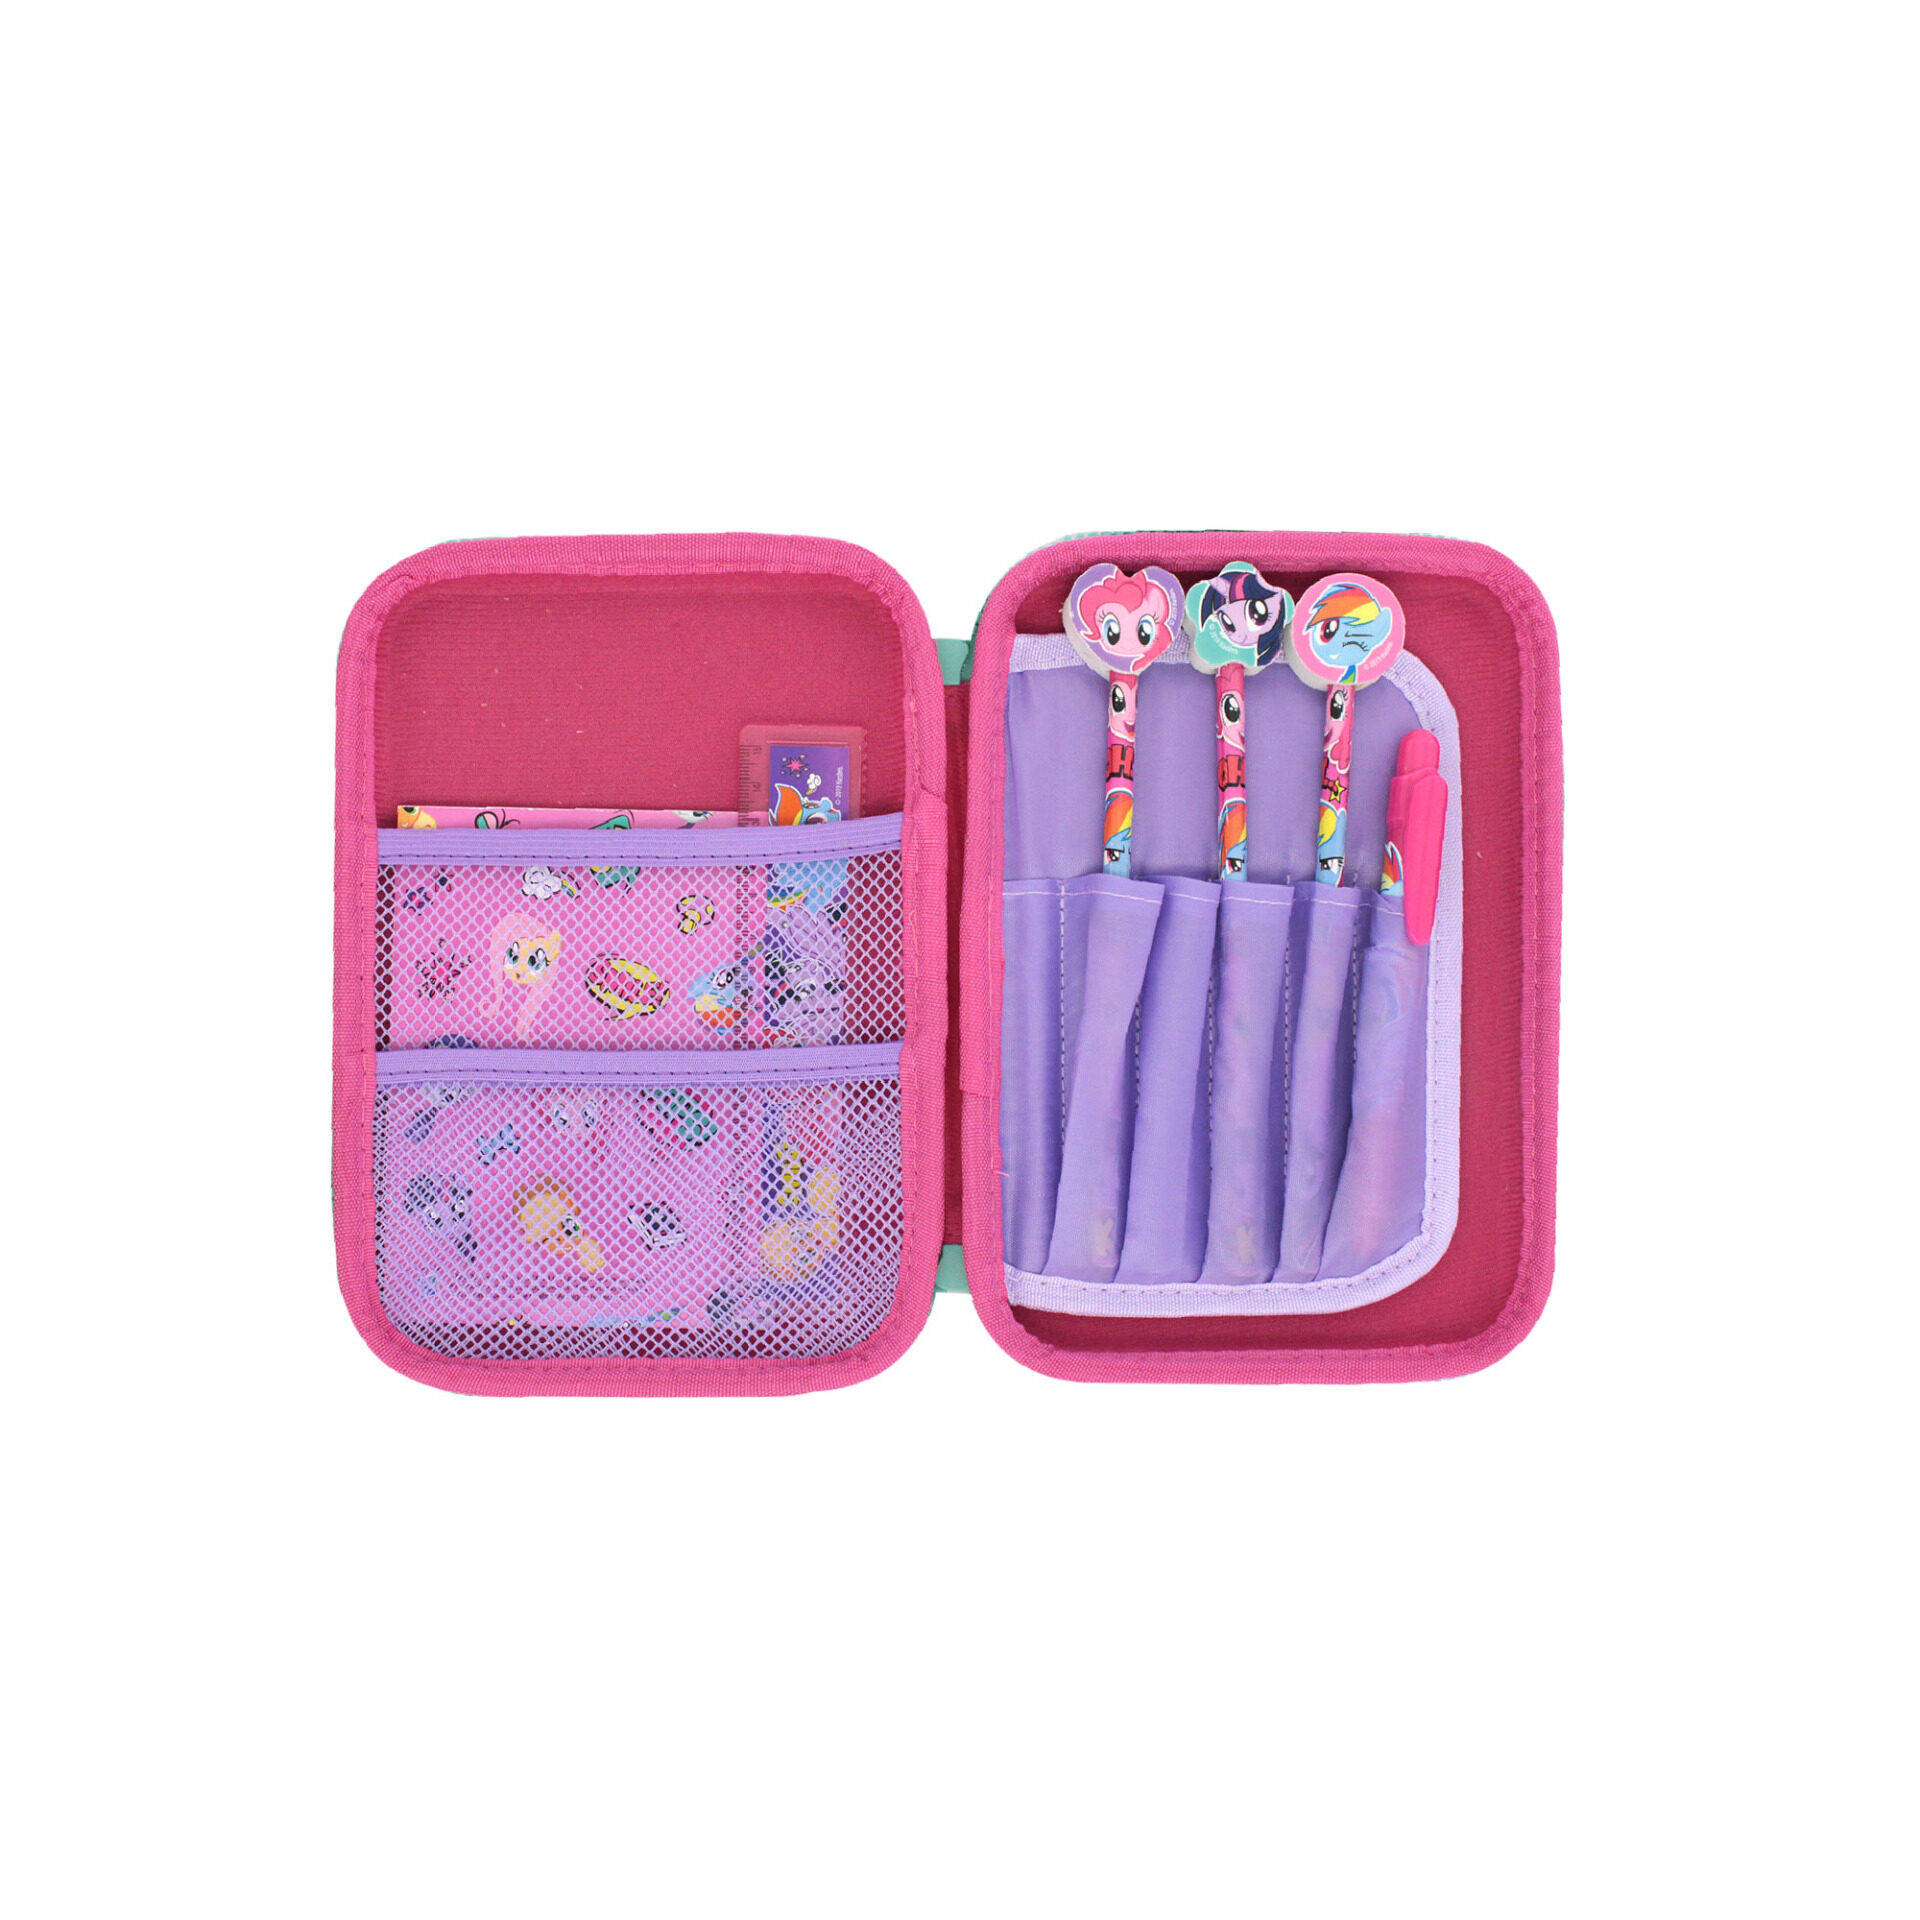 My Little Pony All In 1 Big Stationery Case - 3 Pencils, 1 Mechnical Pencil, Ruler & Mini Notepad